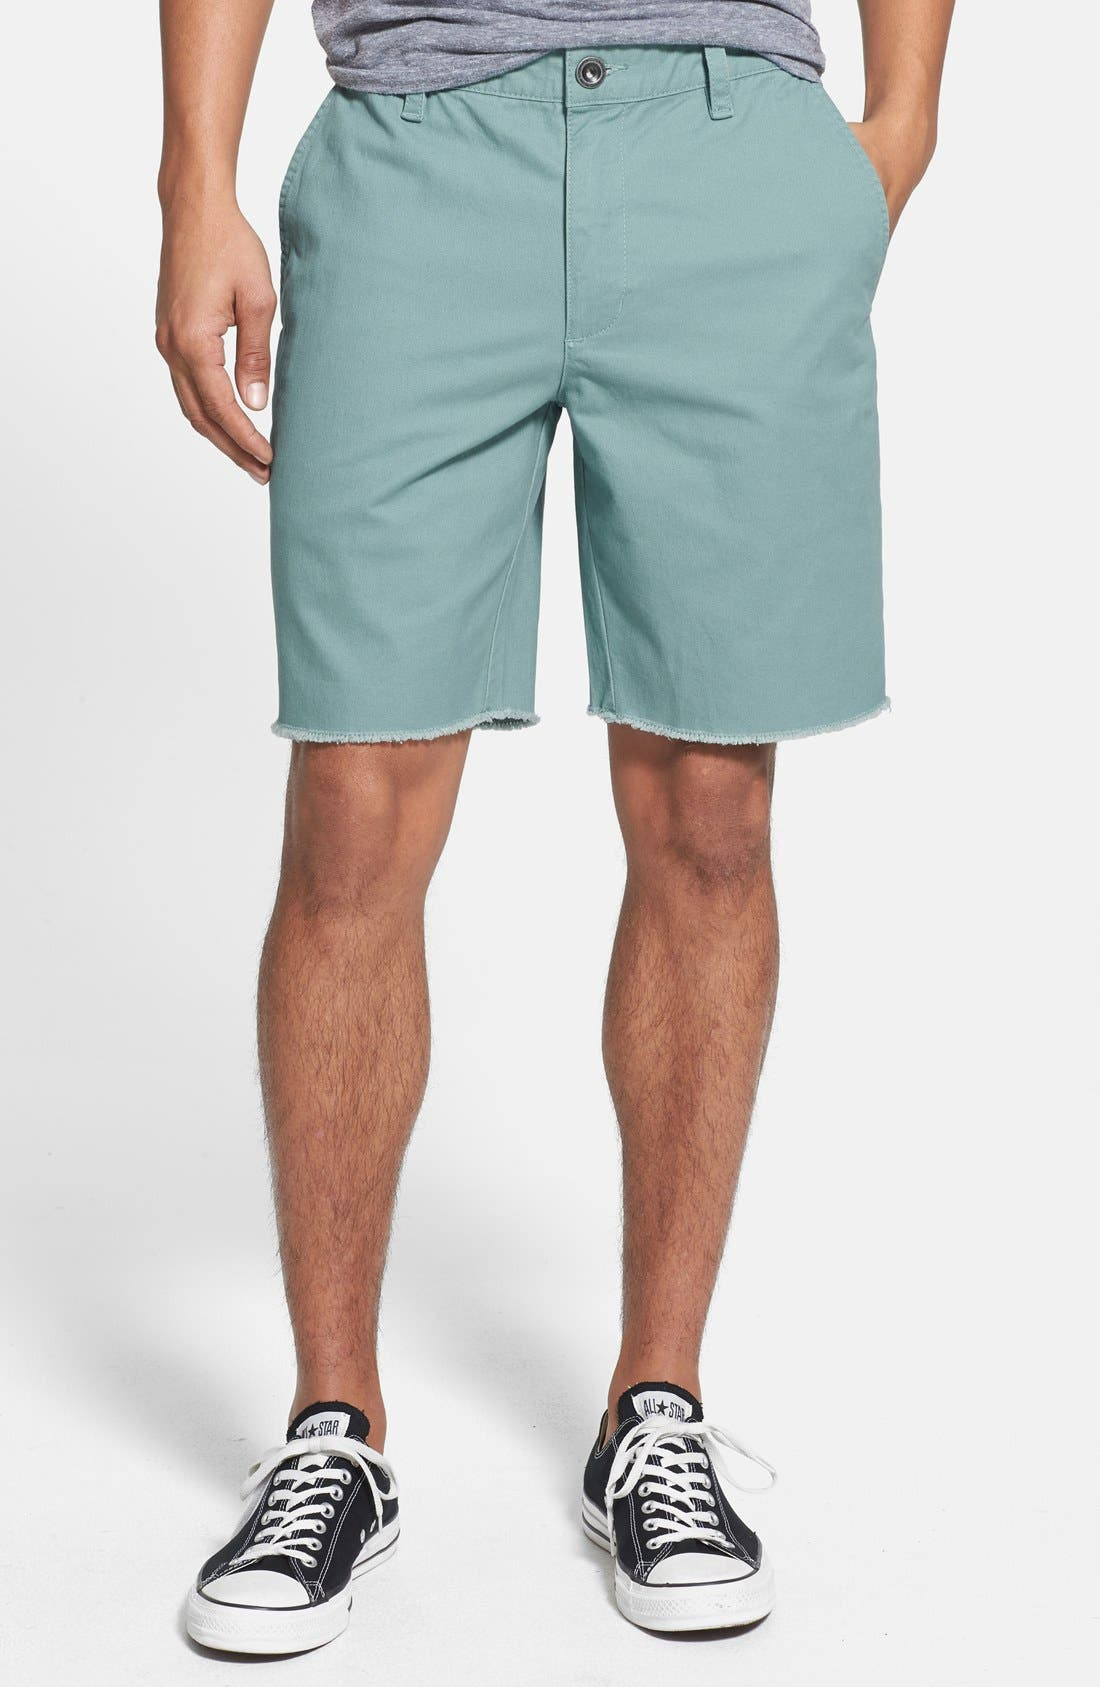 Alternate Image 1 Selected - RVCA 'All Time' Cutoff Shorts